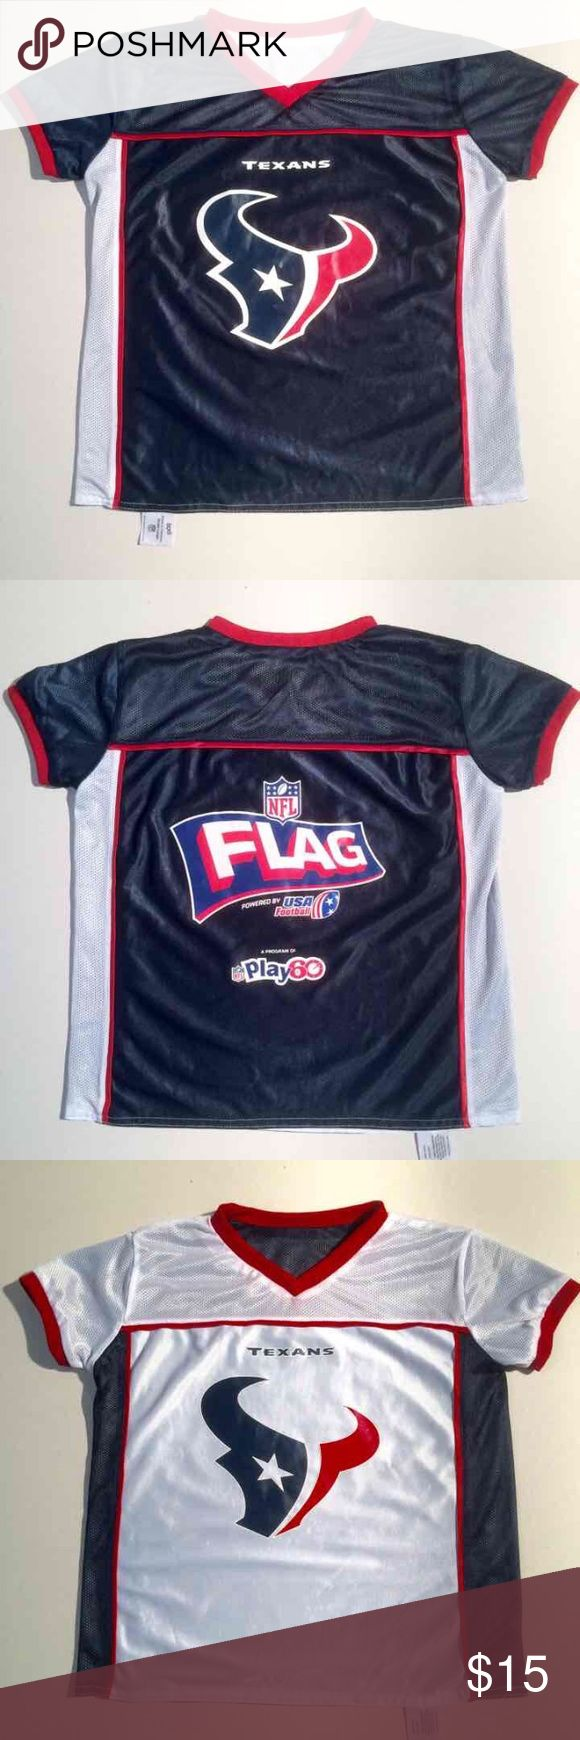 Houston Texans NFL Youth Reversible Jersey Houston Texans  Youth size Large NFL Flag powered by USA Football  Play 60  Reversible - Navy & White  Great for home and away game days! Youth or Ladies size Small/Medium NFL Tops Tees - Short Sleeve